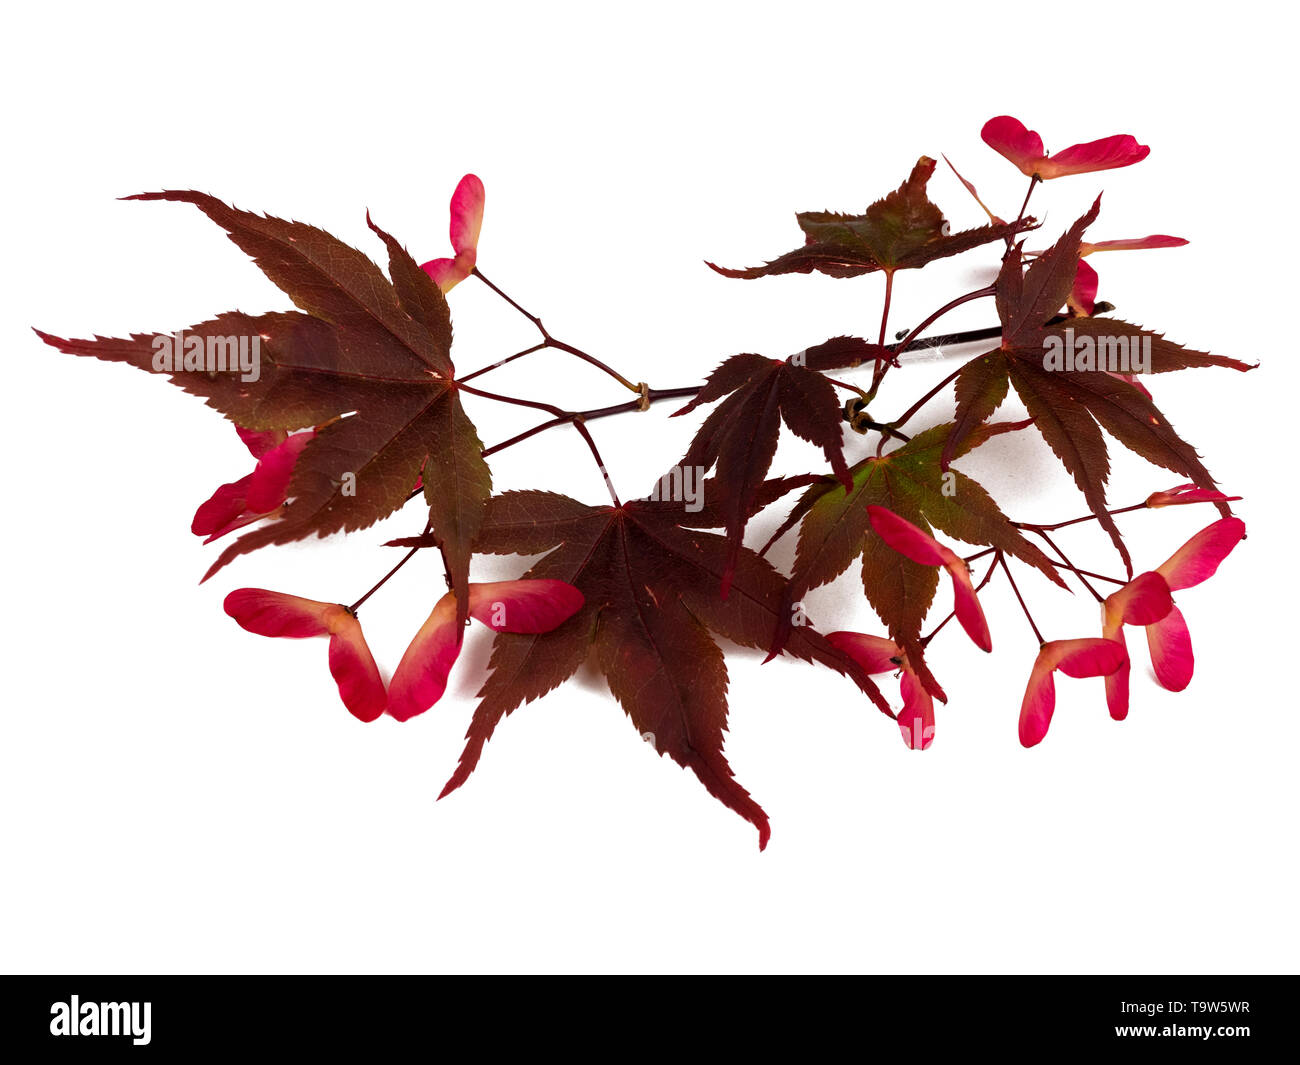 Red winged seeds and red bronze summer foliage of the Japanese maple, Acer palmatum 'Bloodgood', on a white background Stock Photo